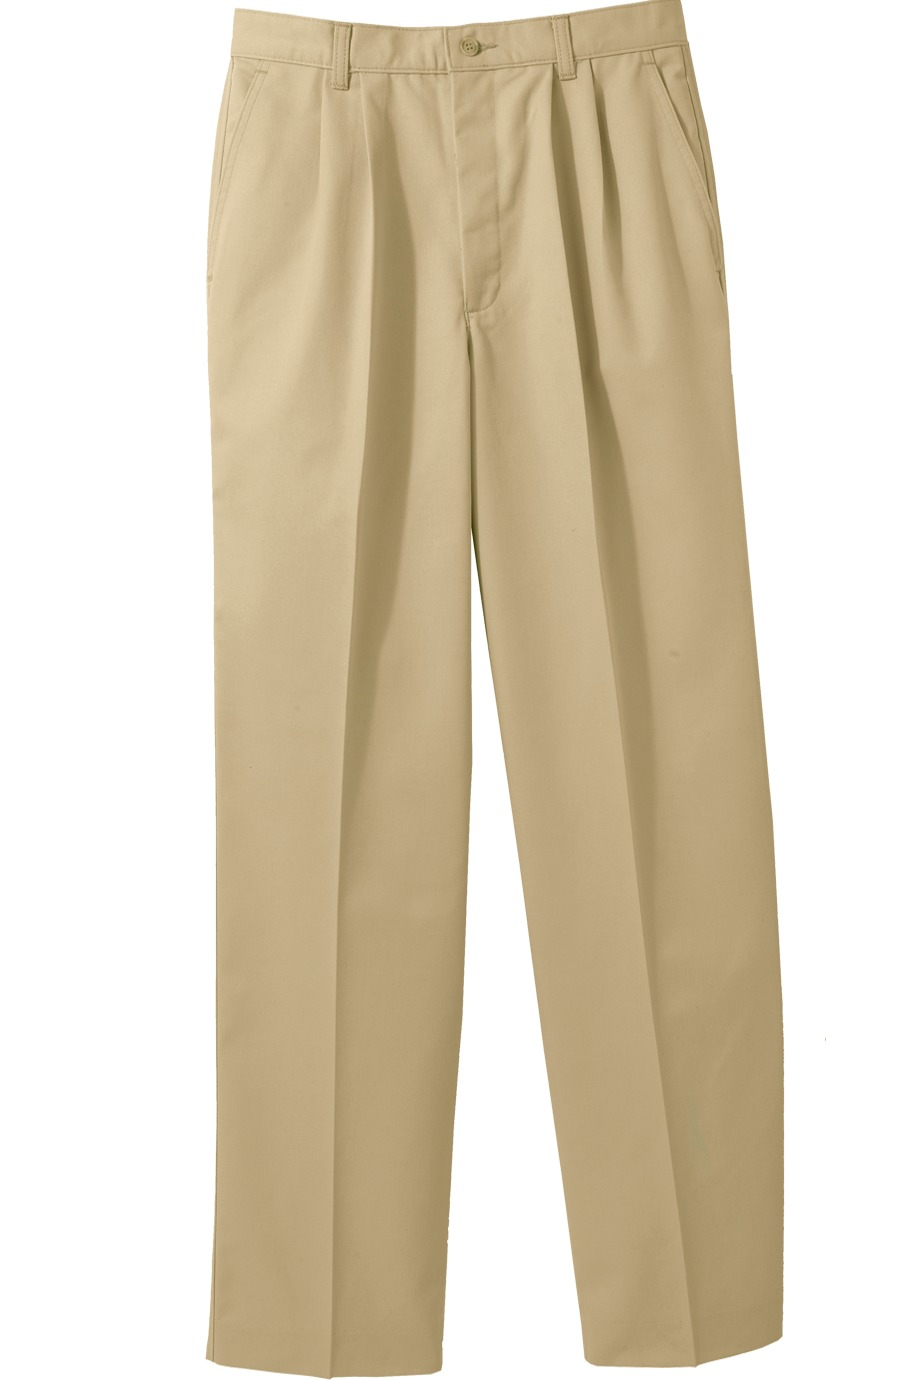 Edwards Garment 2670 - Men's Blended Chino Flat Front ...